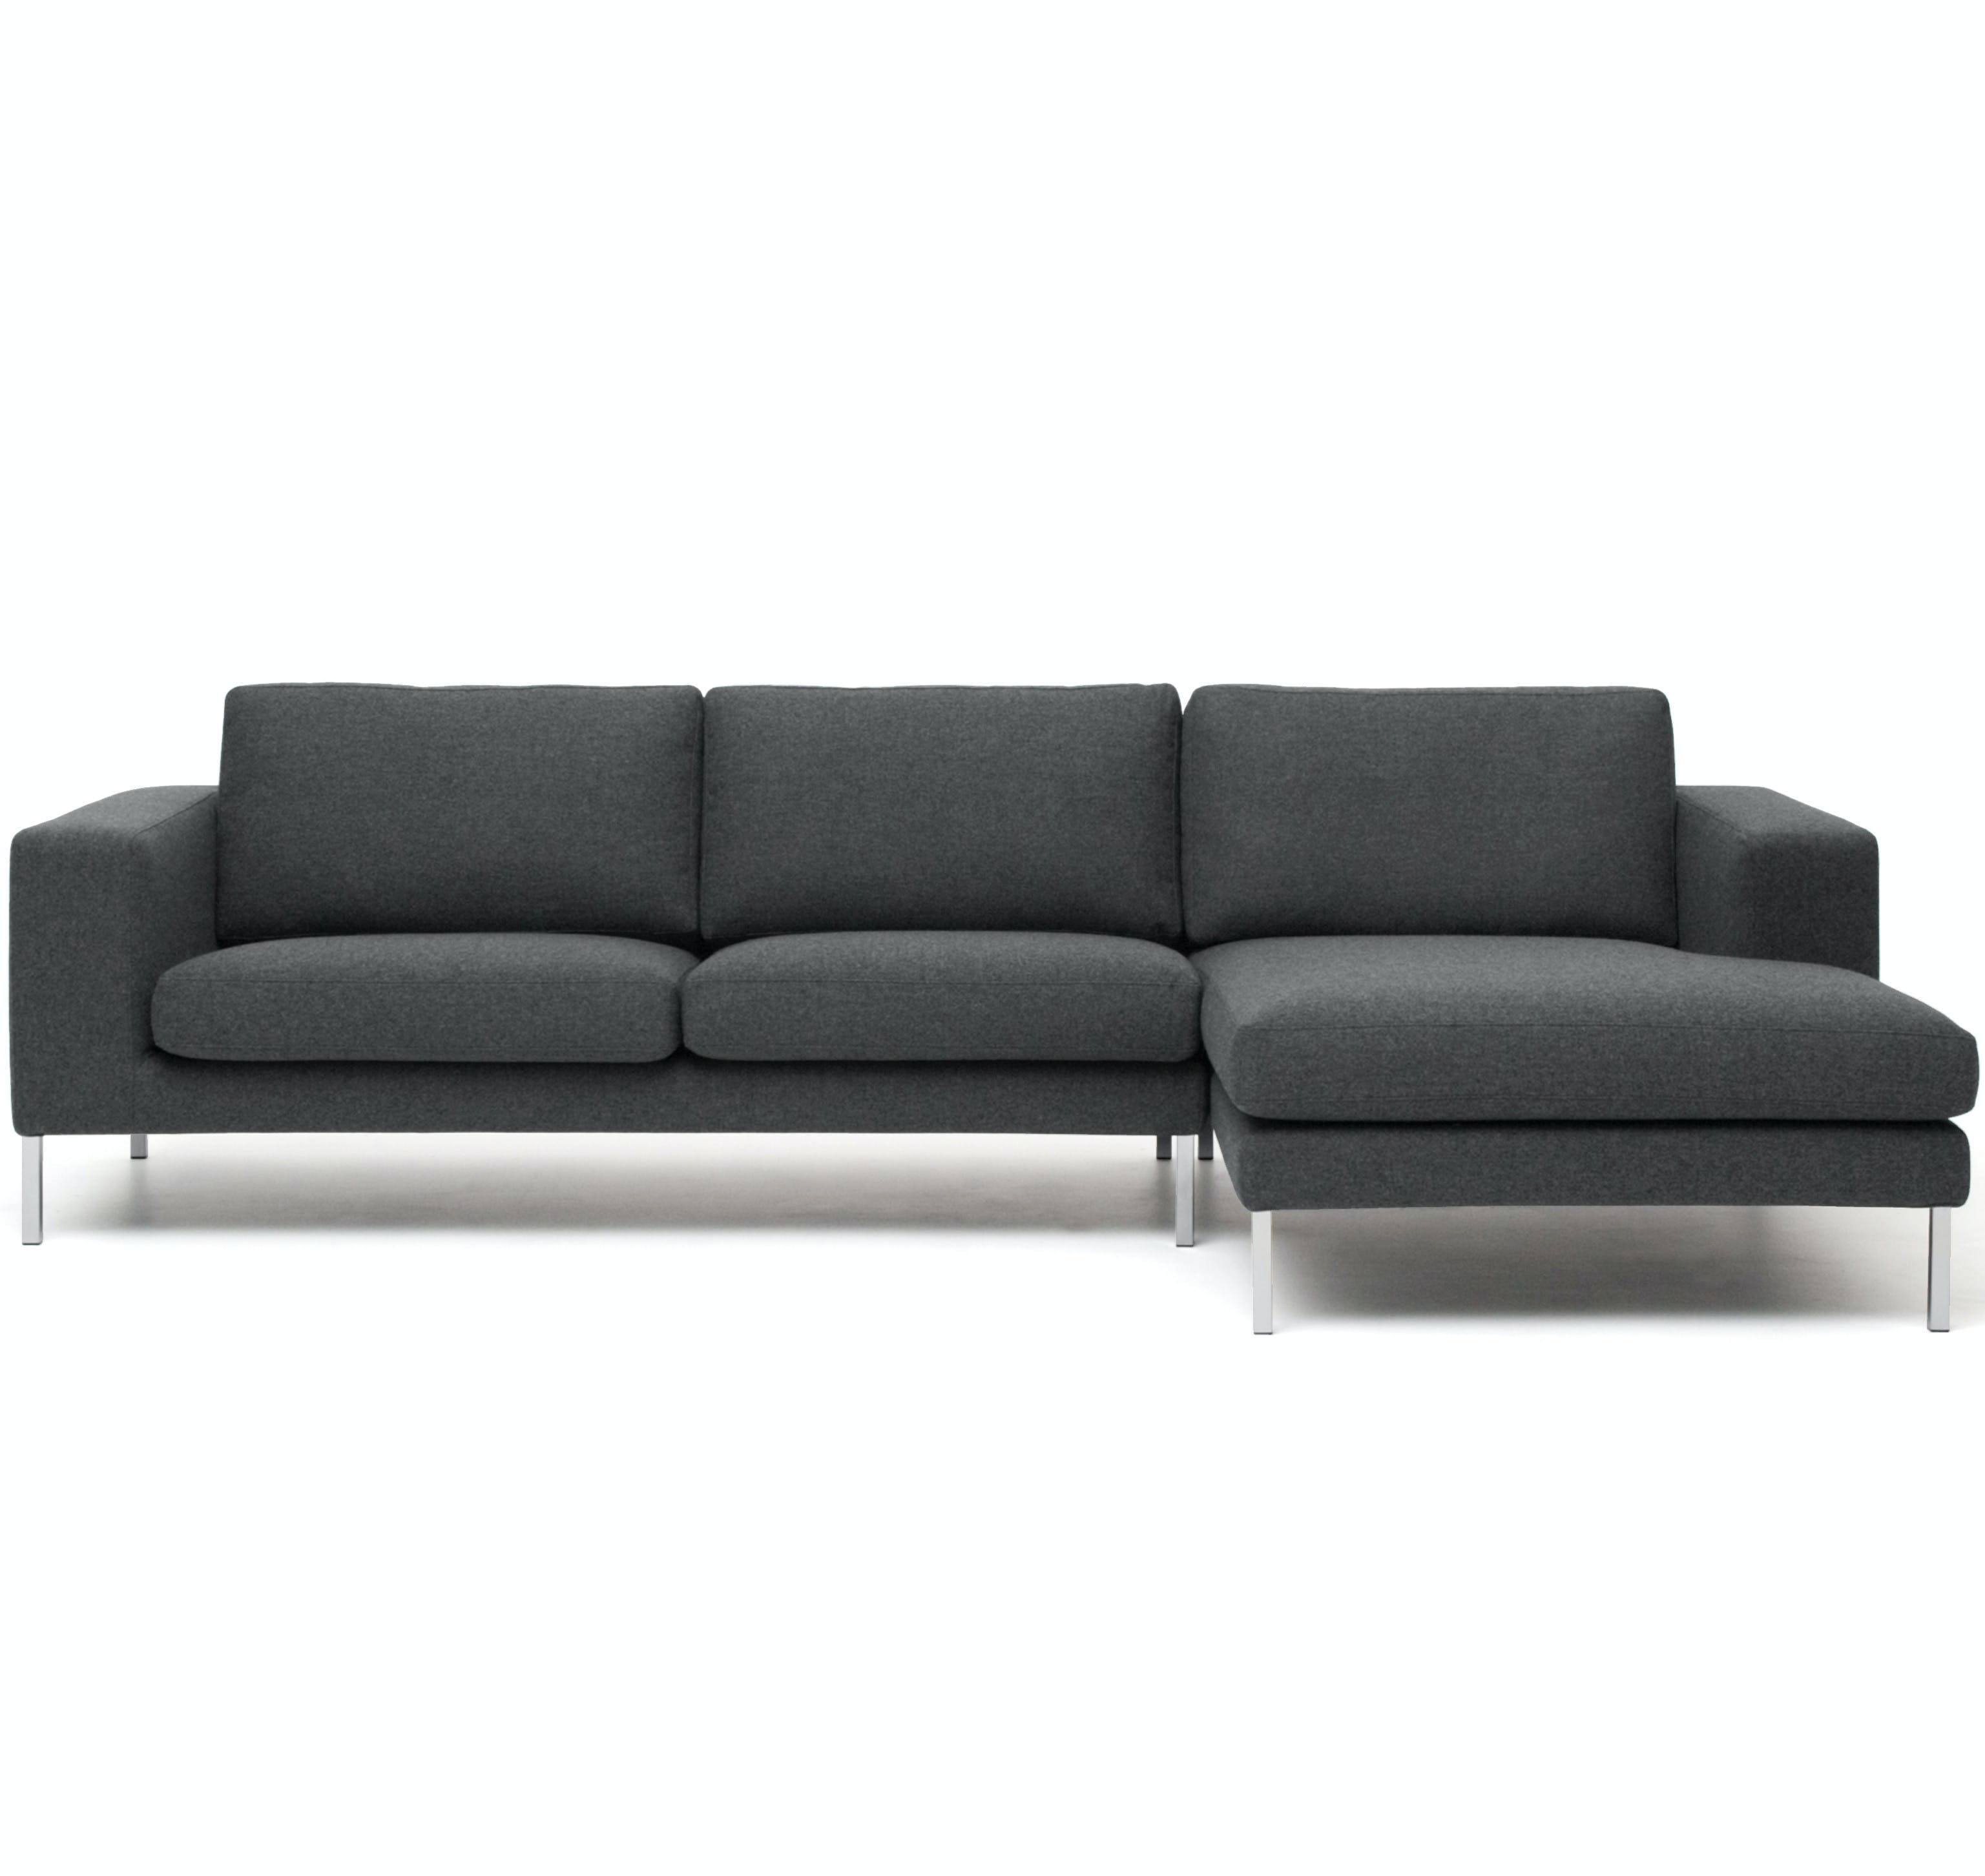 Neosectional00